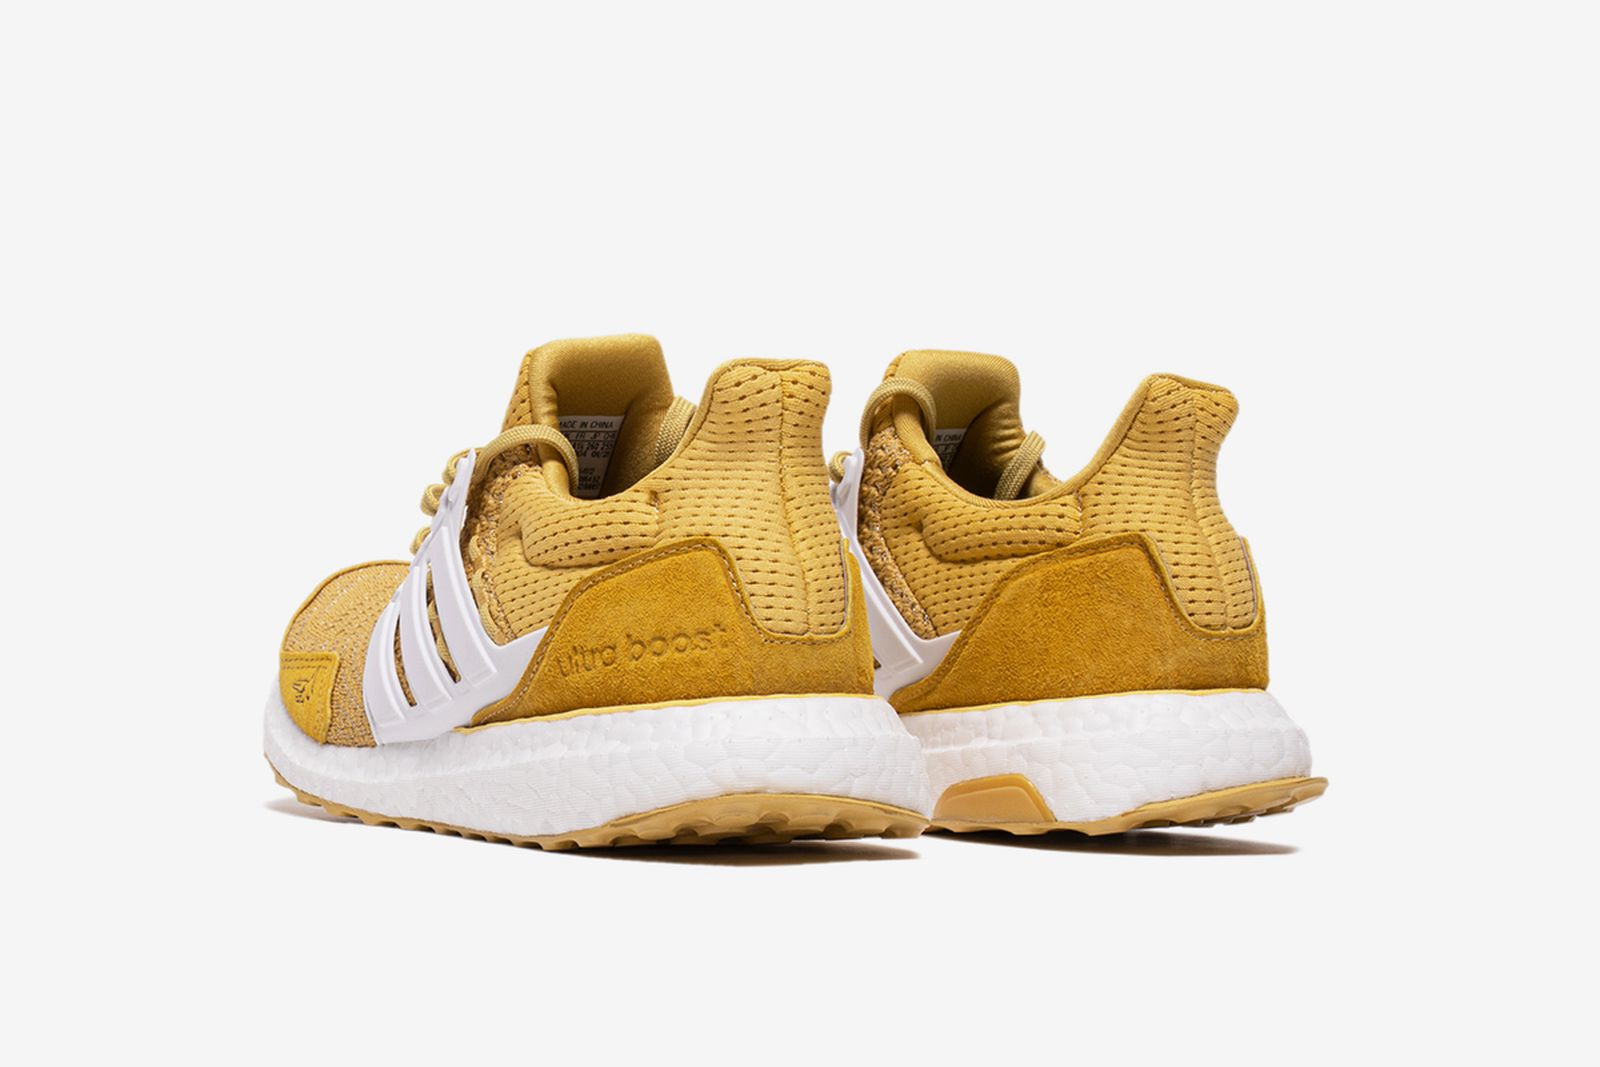 extra-butter-adidas-ultraboost-gold-jacket-release-date-price-1-03